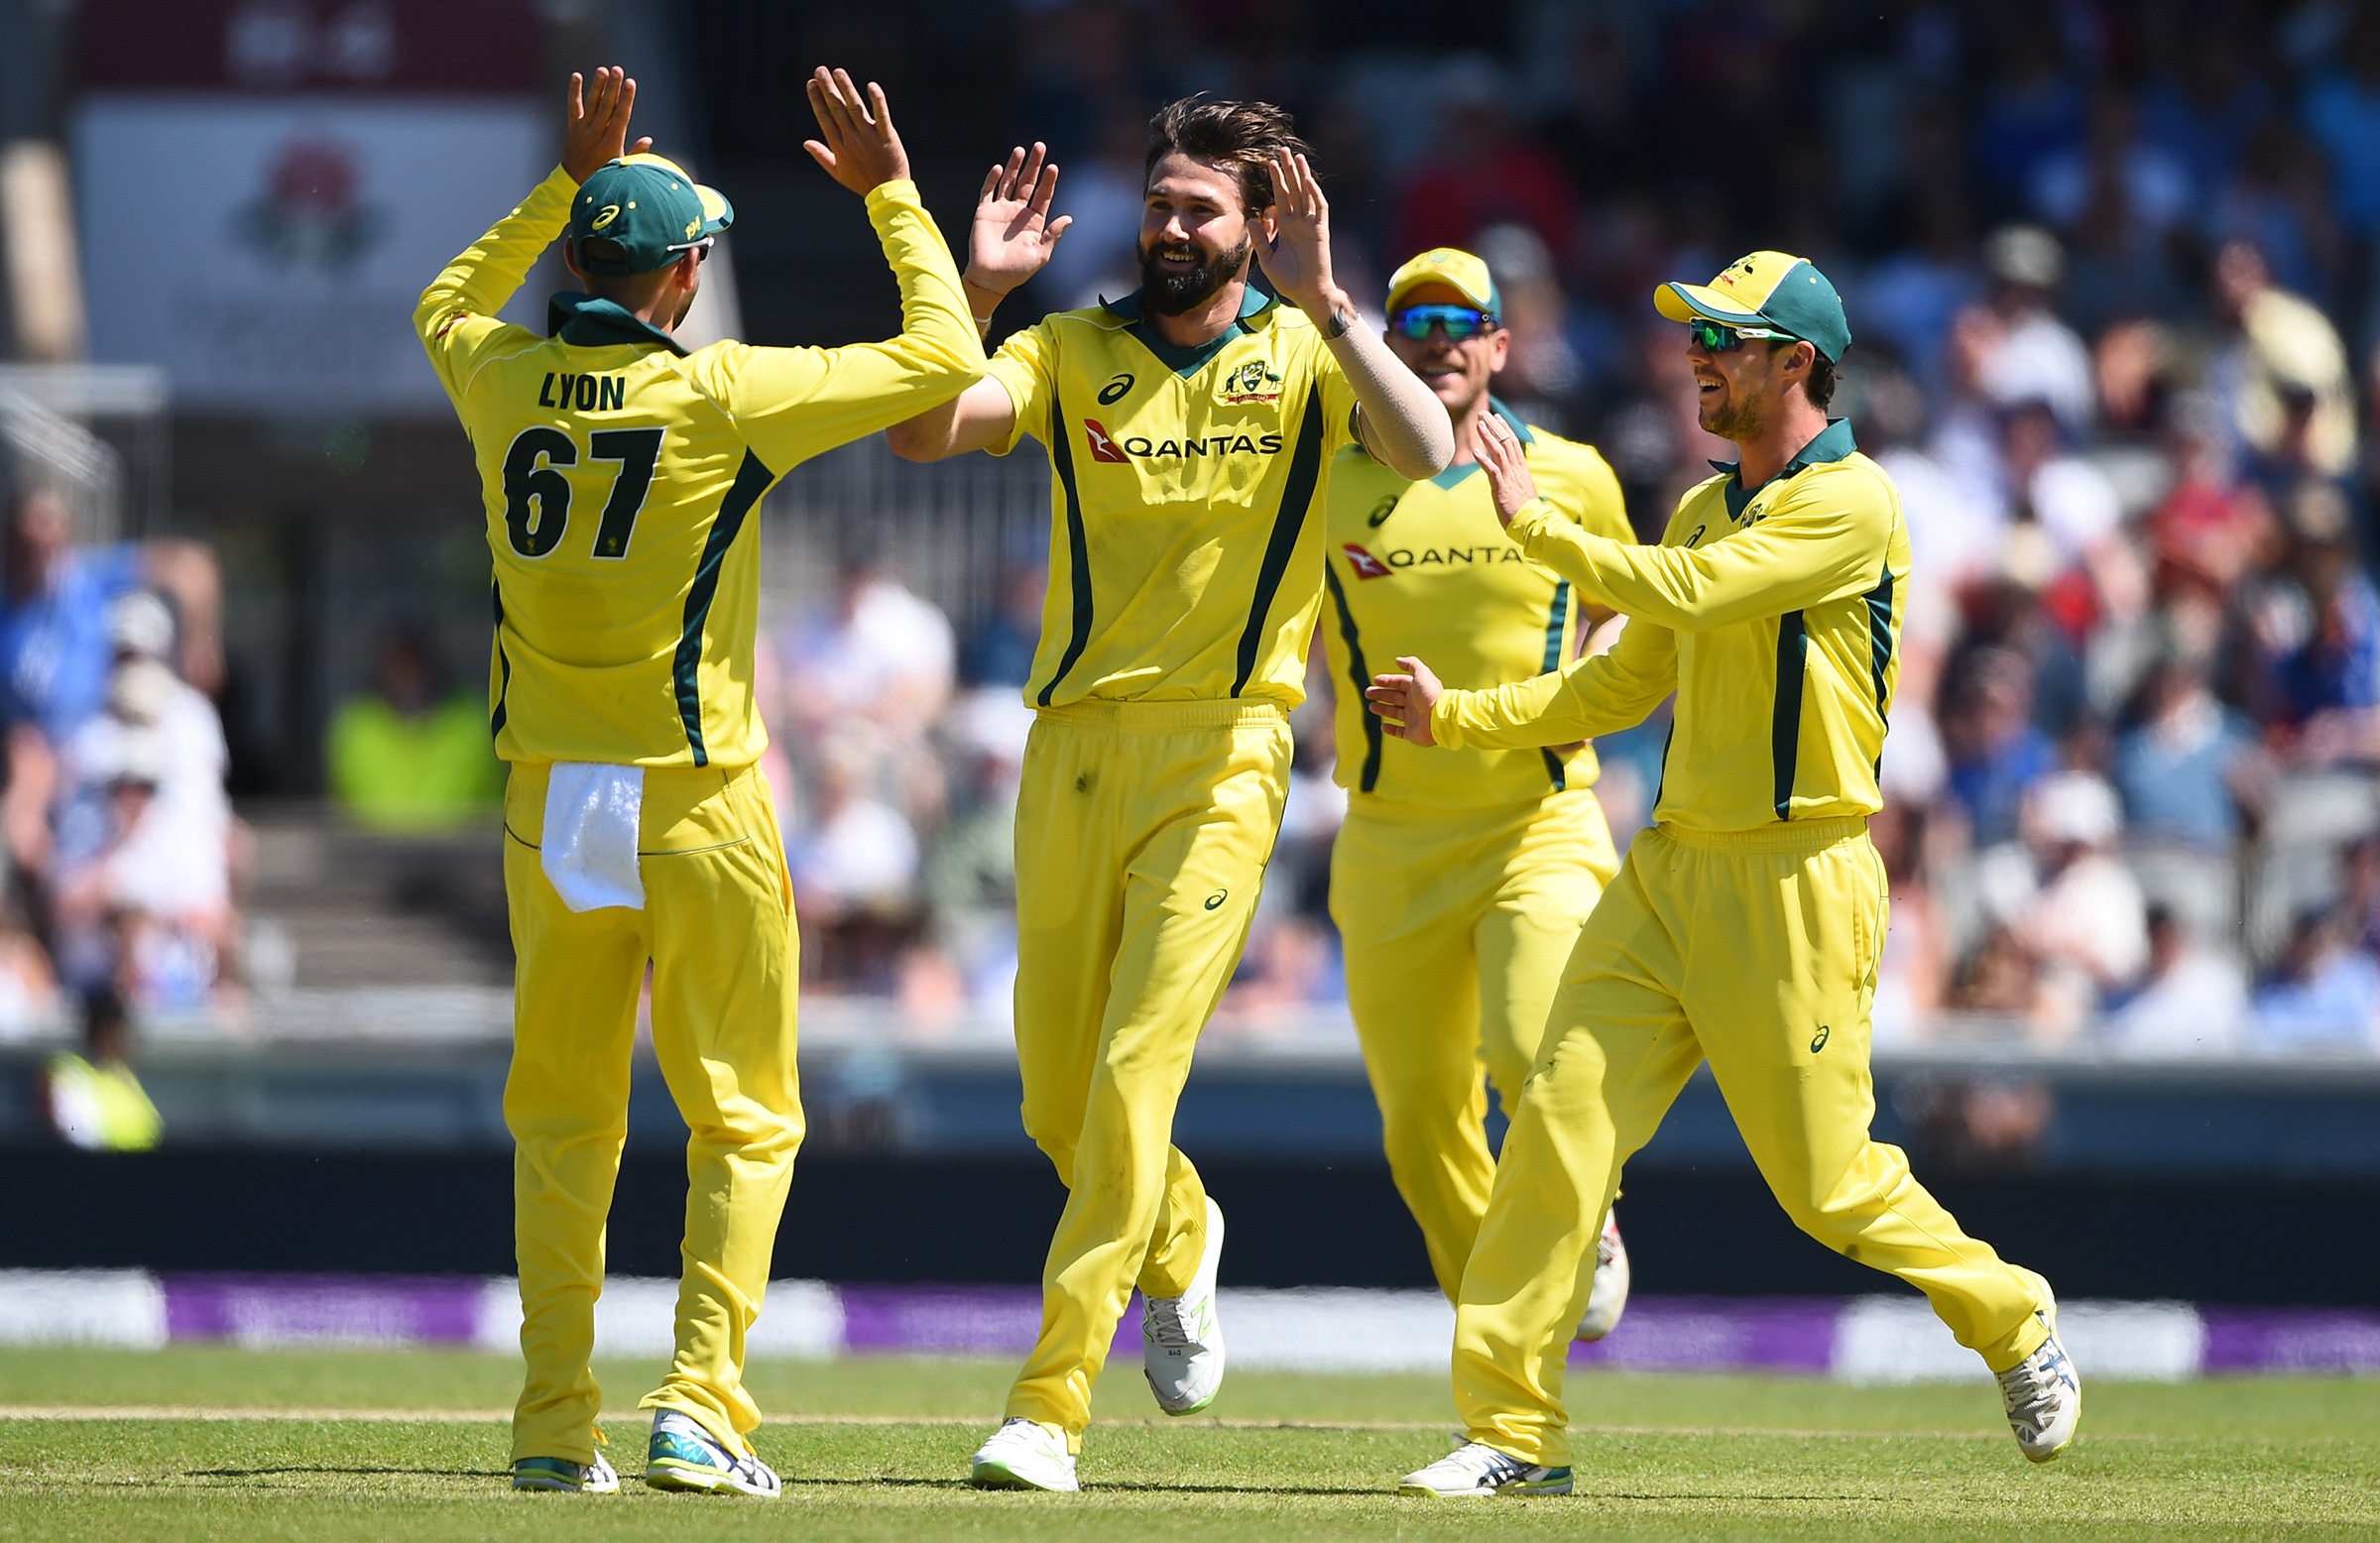 Richardson struck twice in the one over // Getty